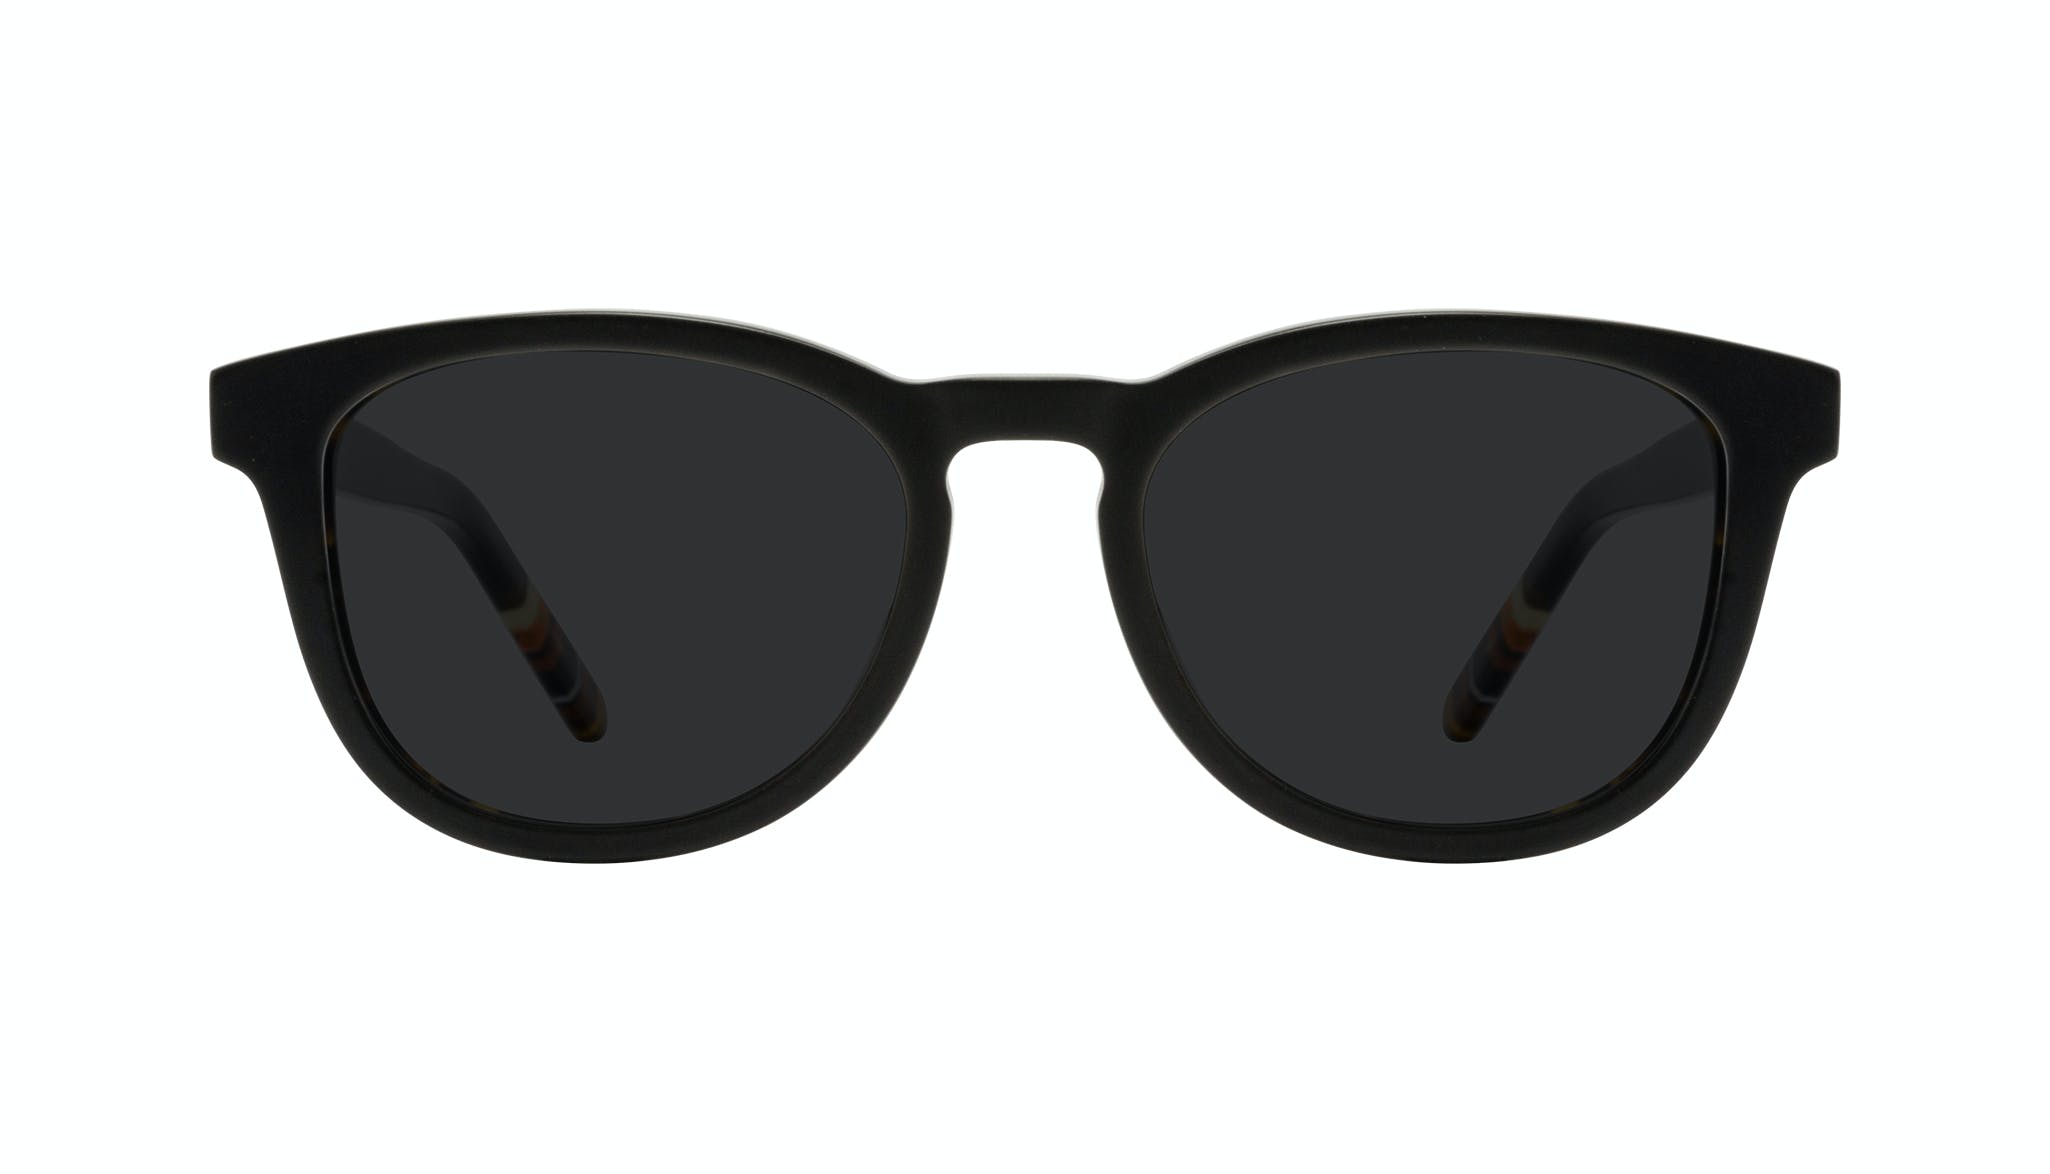 Affordable Fashion Glasses Round Sunglasses Men Goal Black Tort